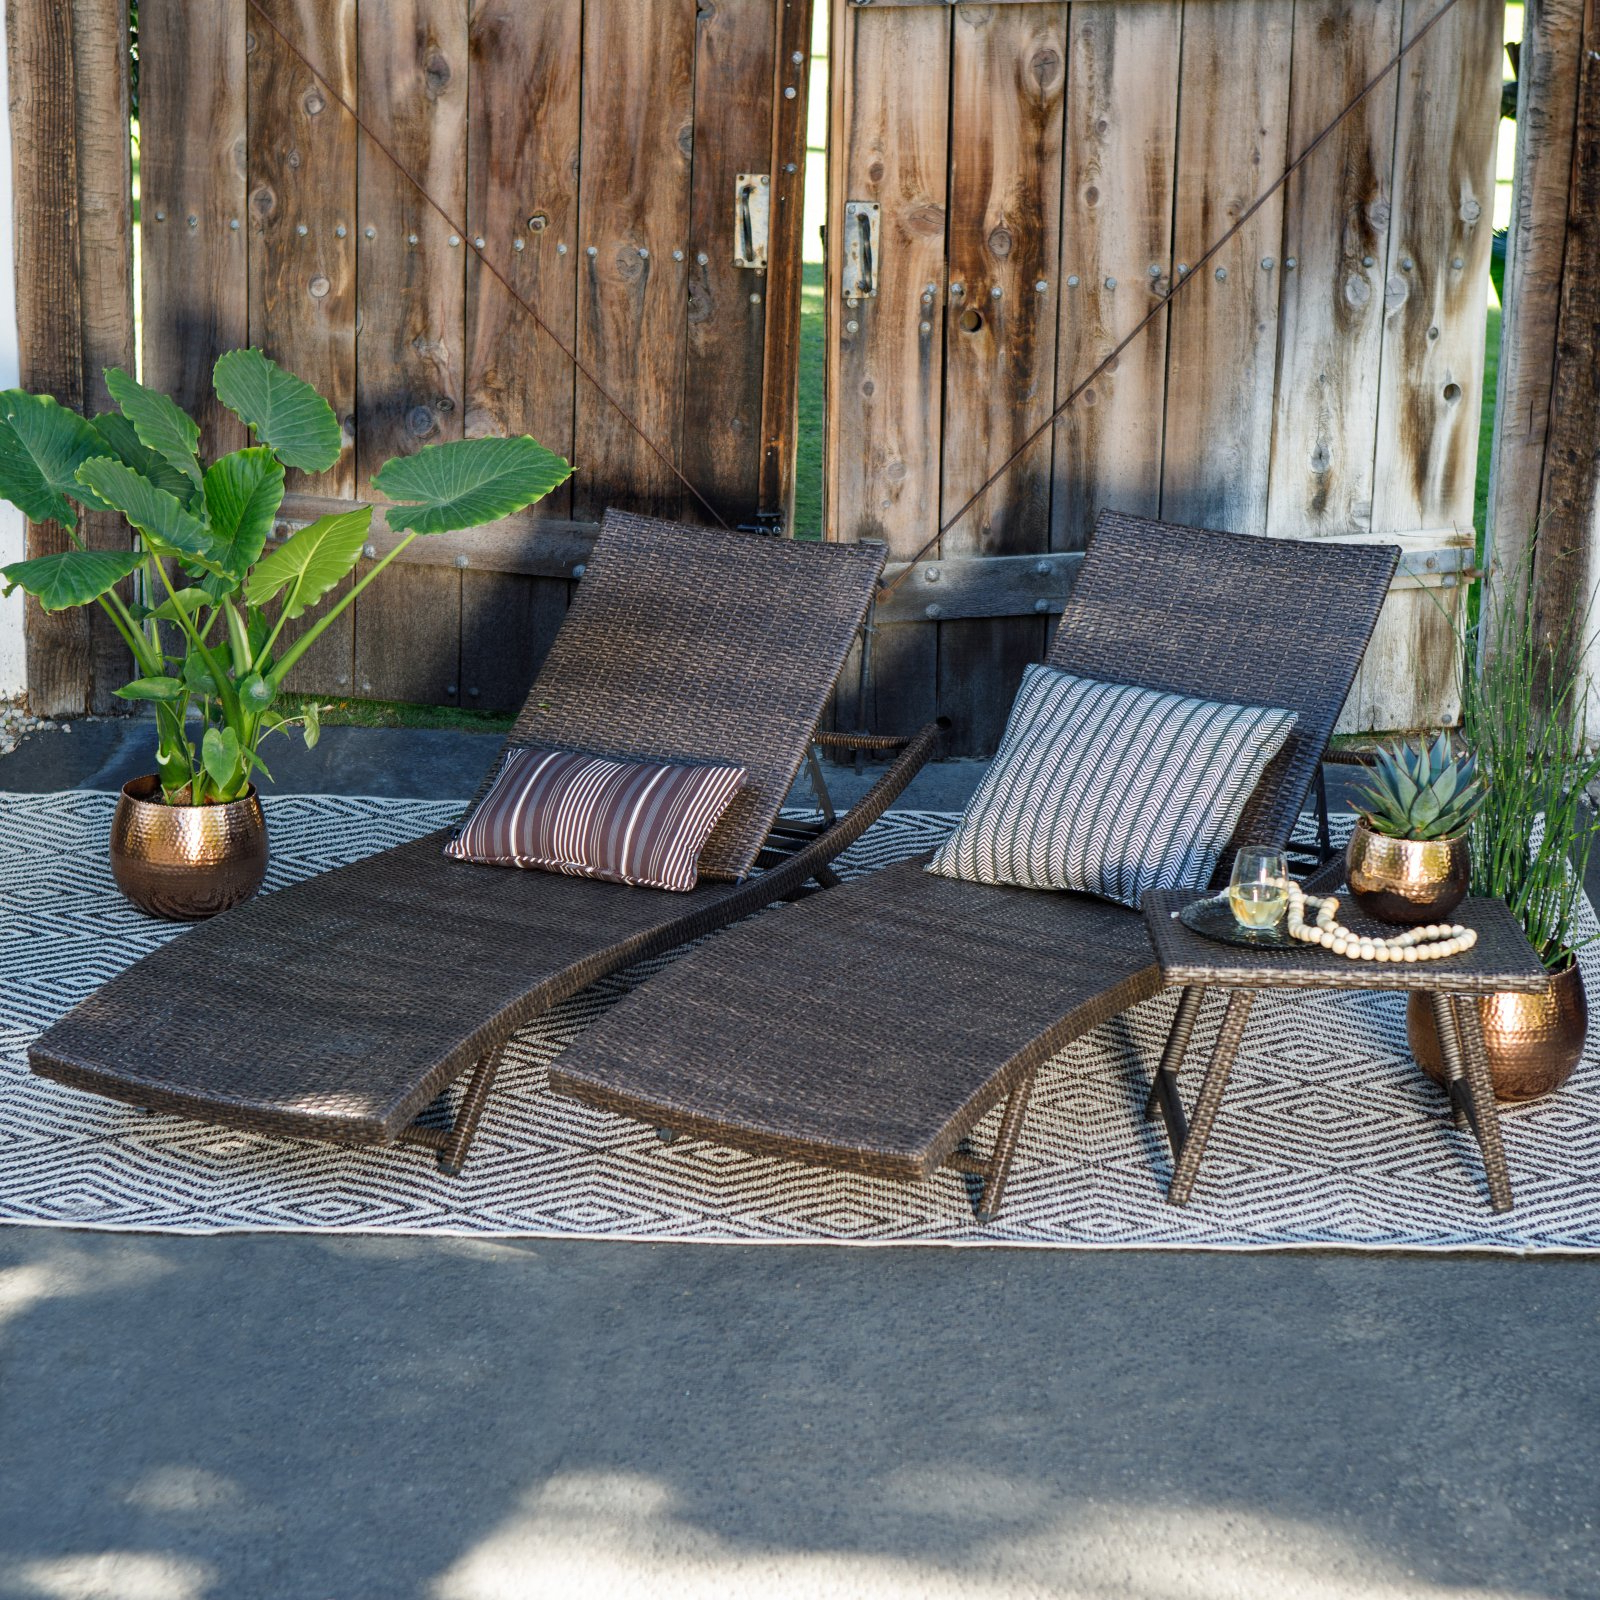 Preferred Outdoor 3 Piece Wicker Chaise Lounges And Table Sets Within Coral Coast Ashley All Weather Wicker 3 Piece Chaise Lounge Set With Table  – Walmart (View 22 of 25)